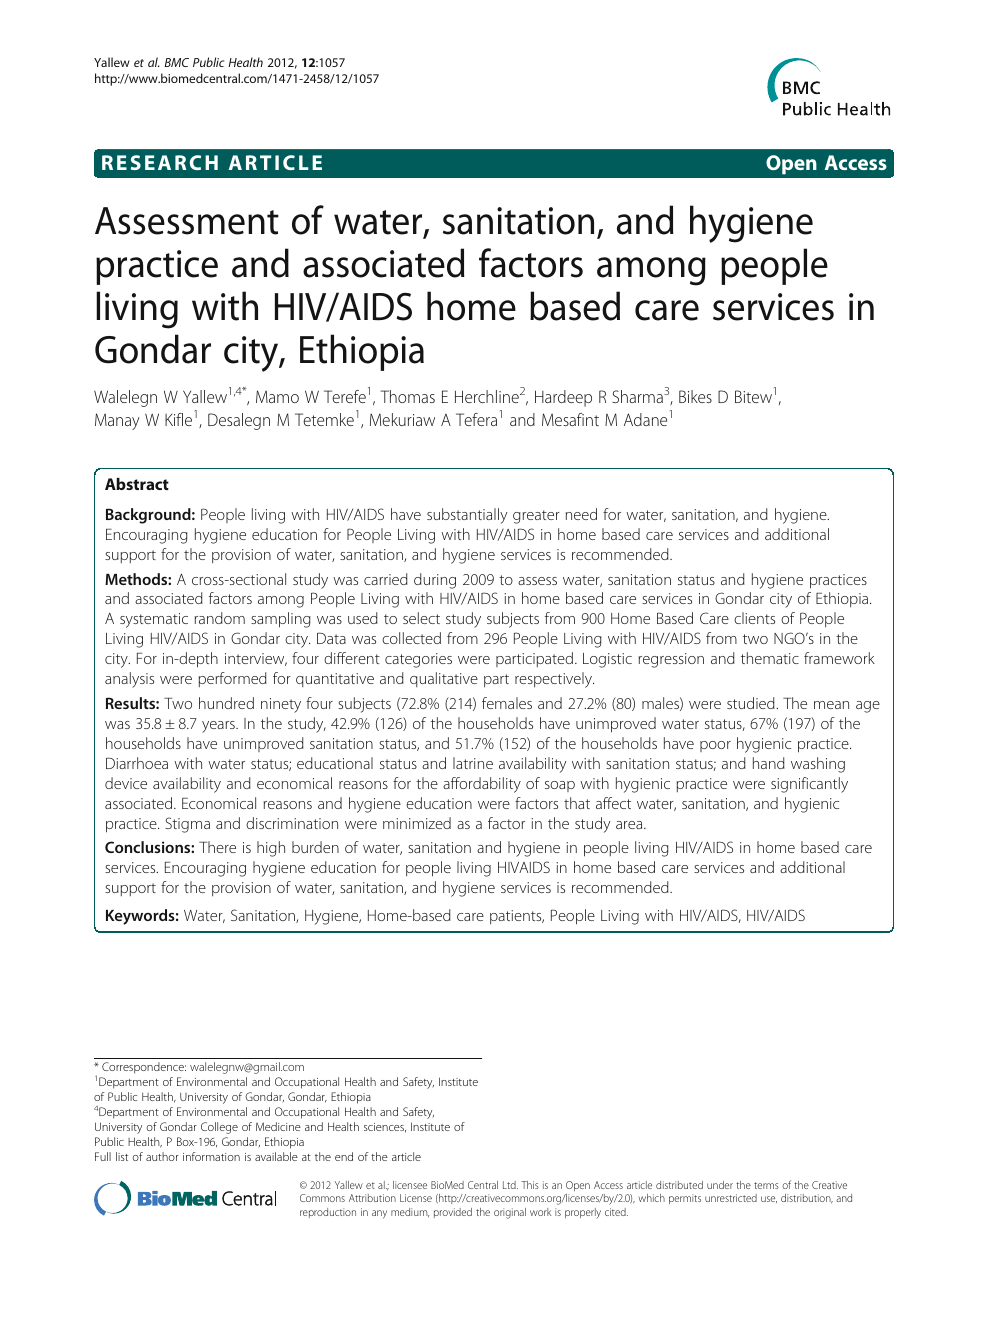 Assessment of water, sanitation, and hygiene practice and